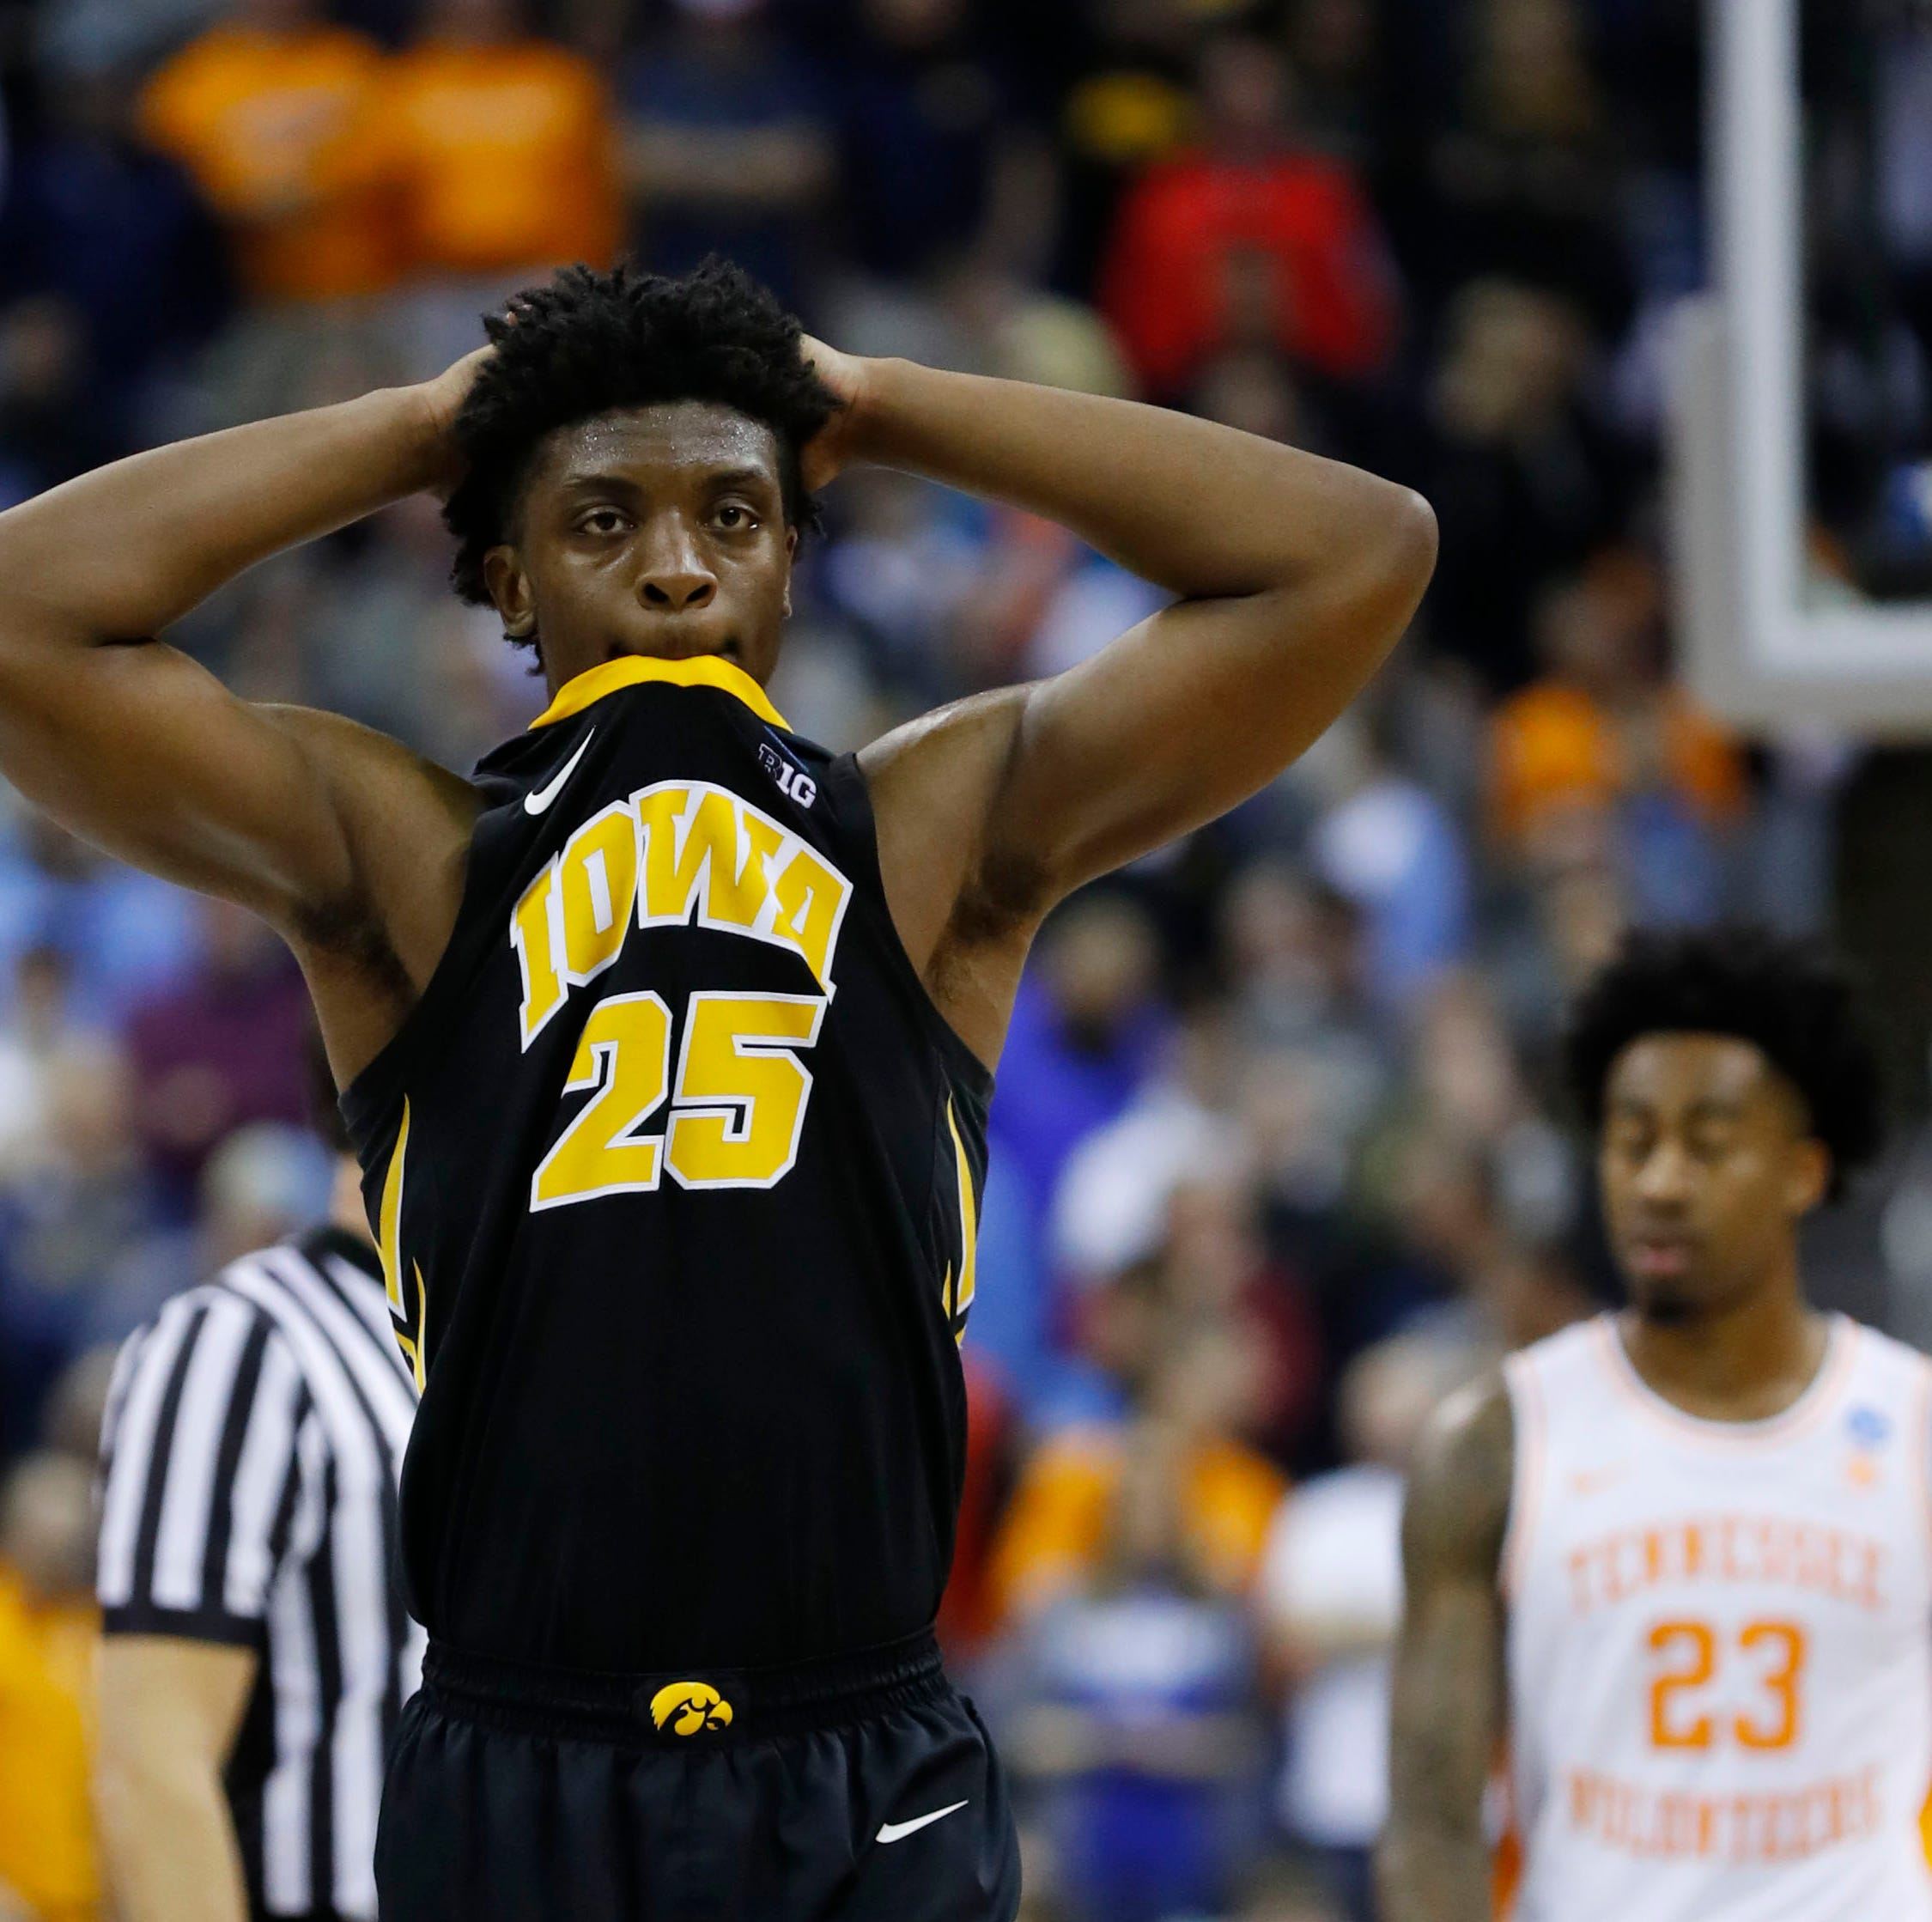 'Guys wanted it': Tyler Cook leads Hawkeye rally that comes up just short of history